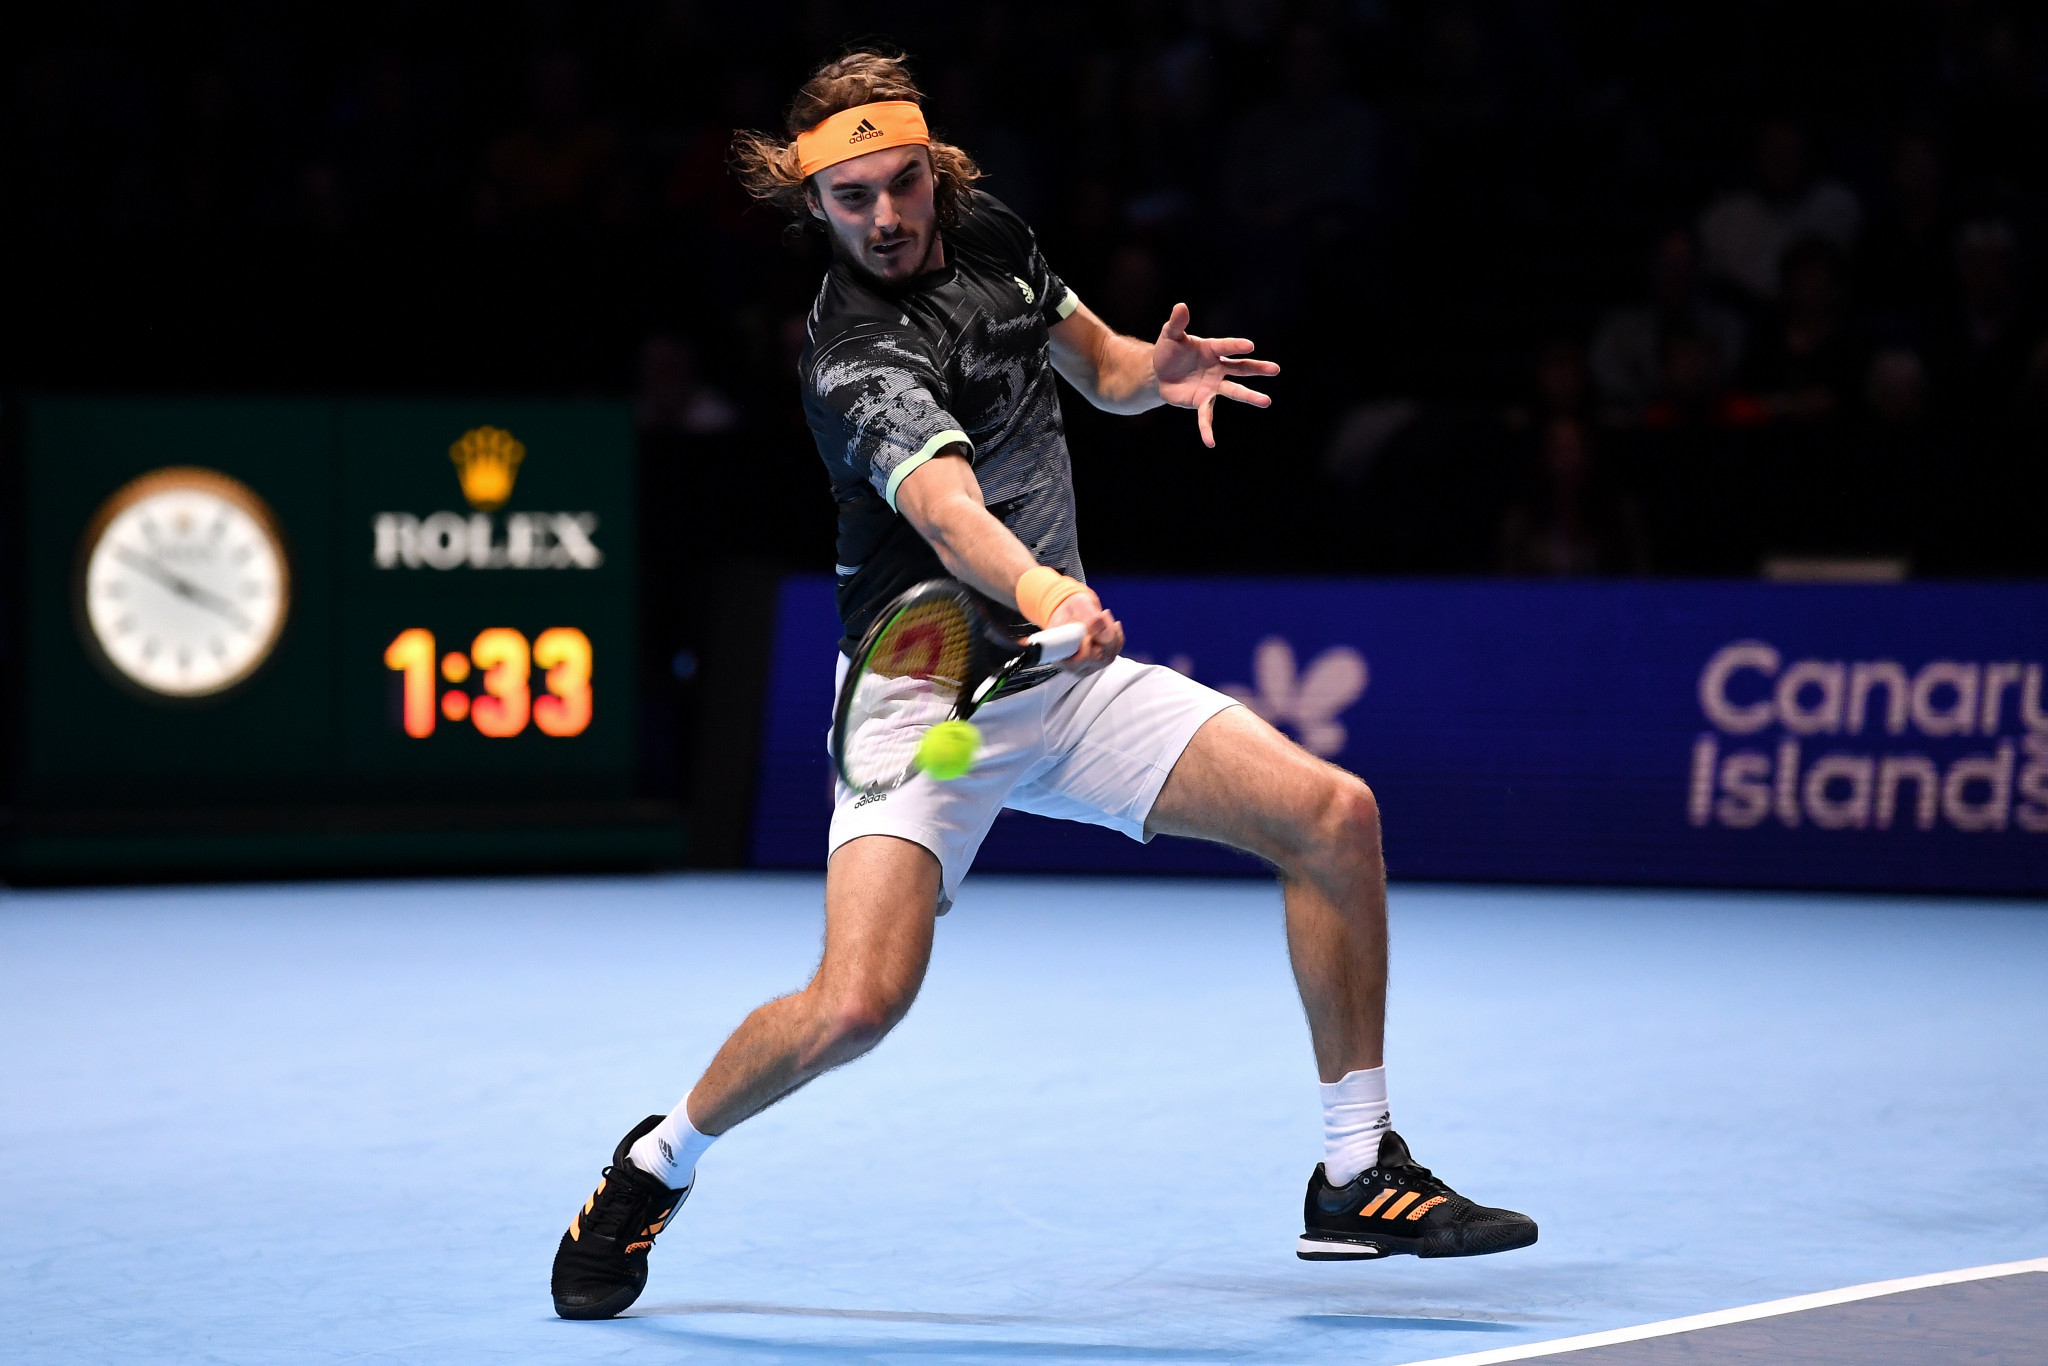 Greece's Stefanos Tsitsipas won his first-ever match at the ATP Finals ©Getty Images